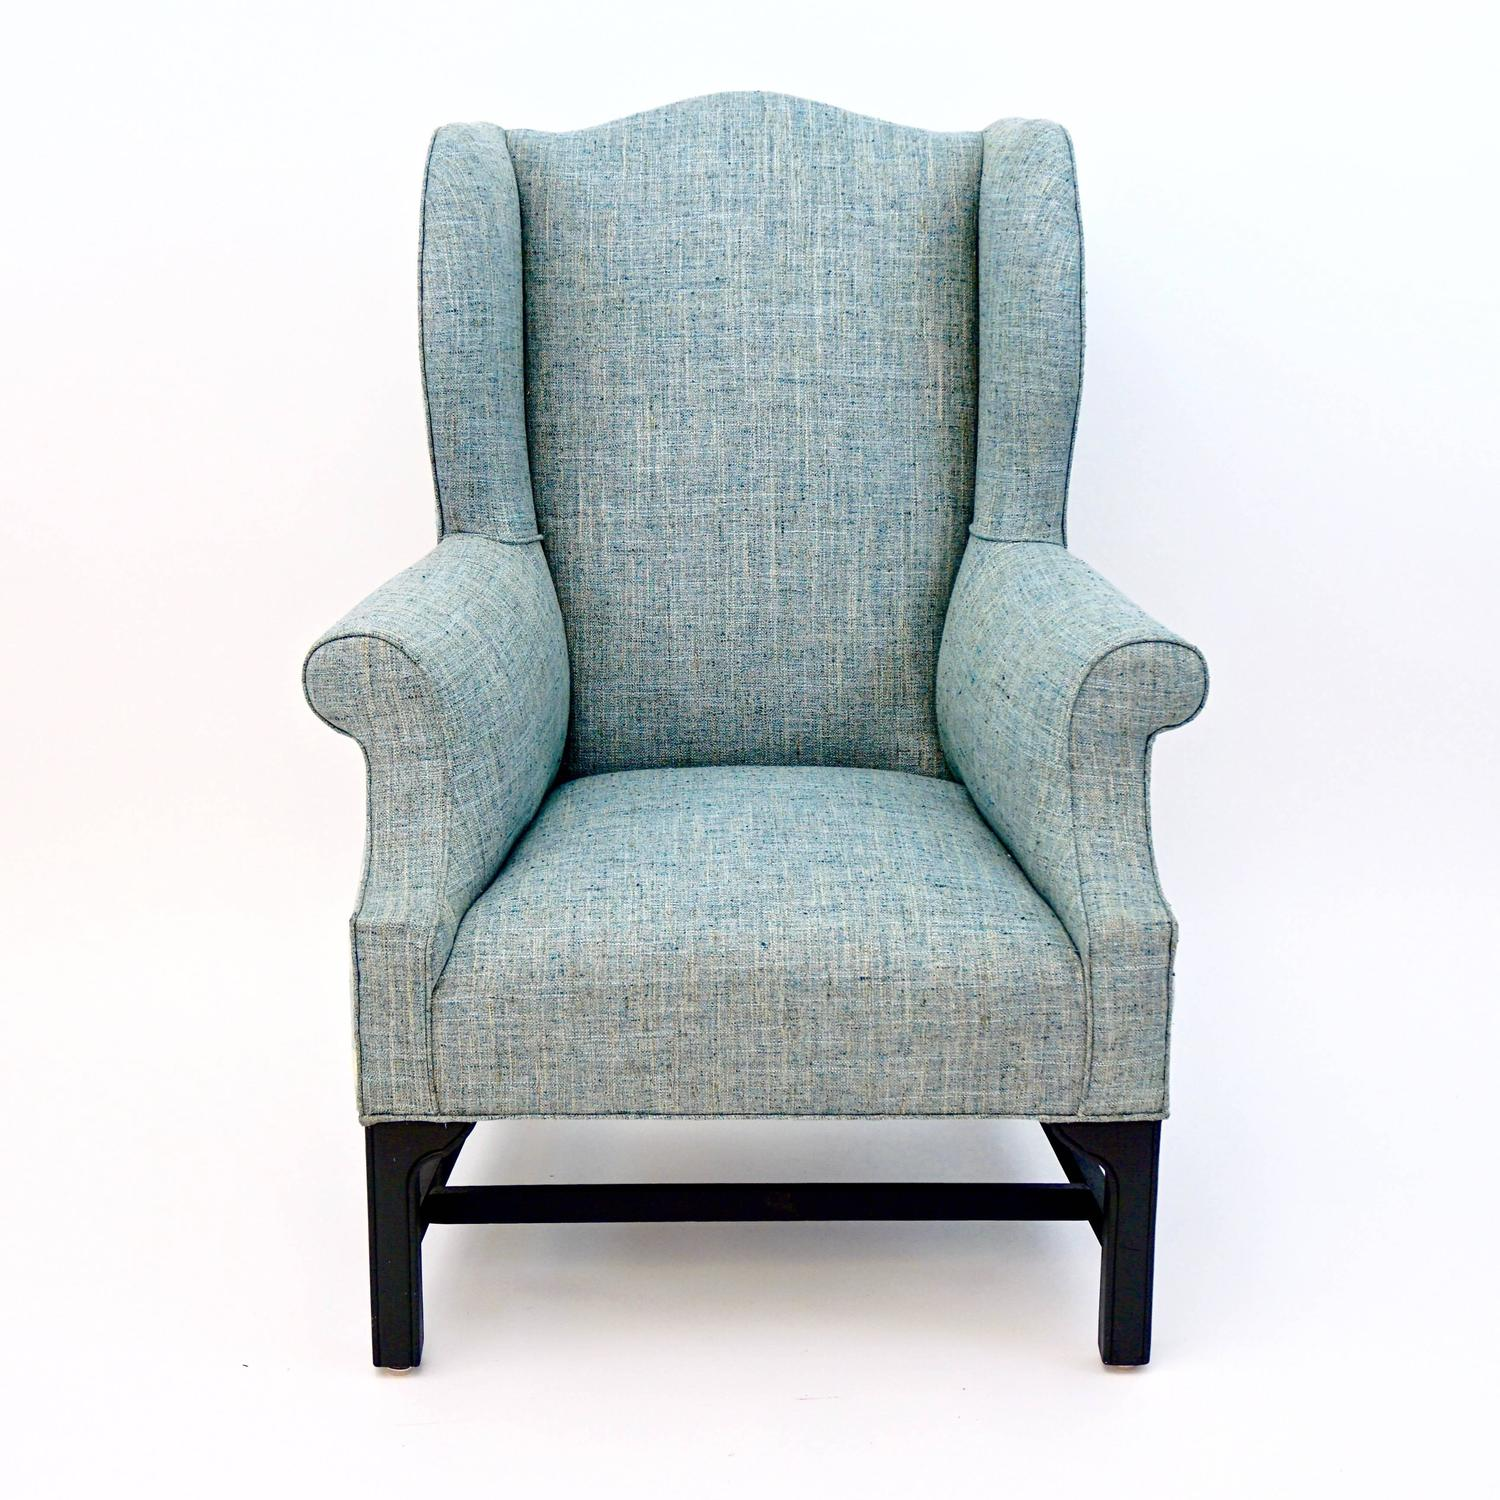 wingback chair for sale covers bristol and bath vintage wing newly upholstered at 1stdibs